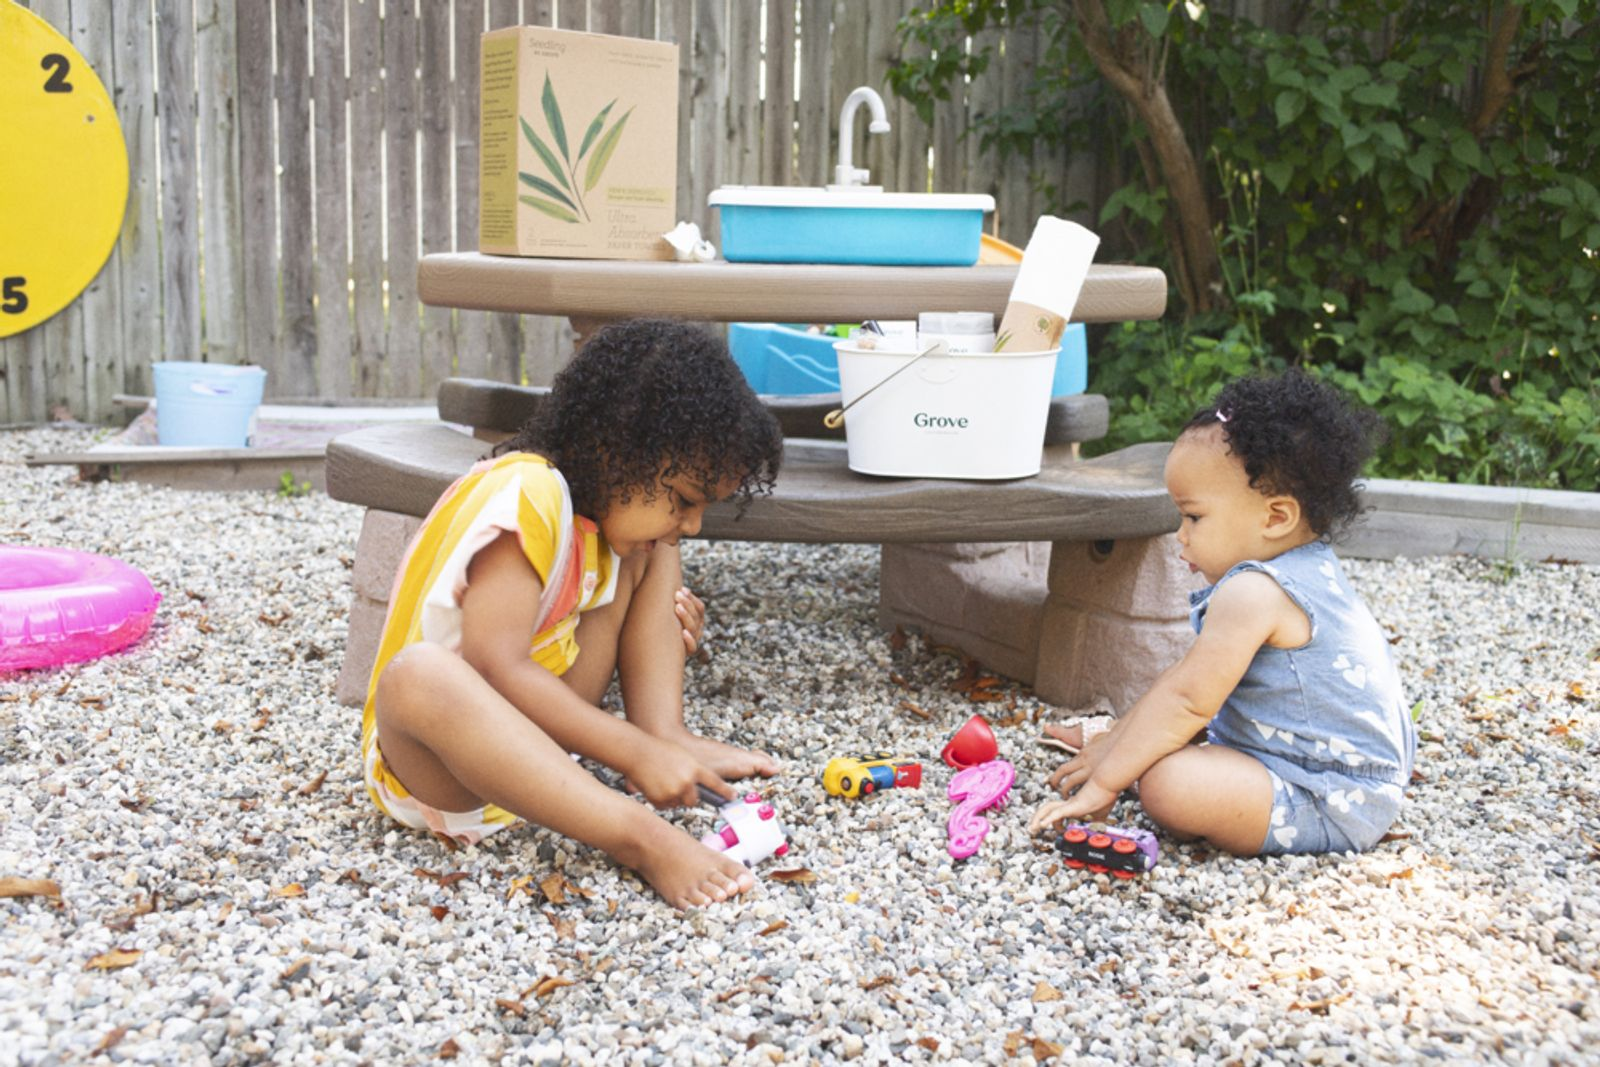 Kids playing with toys outside